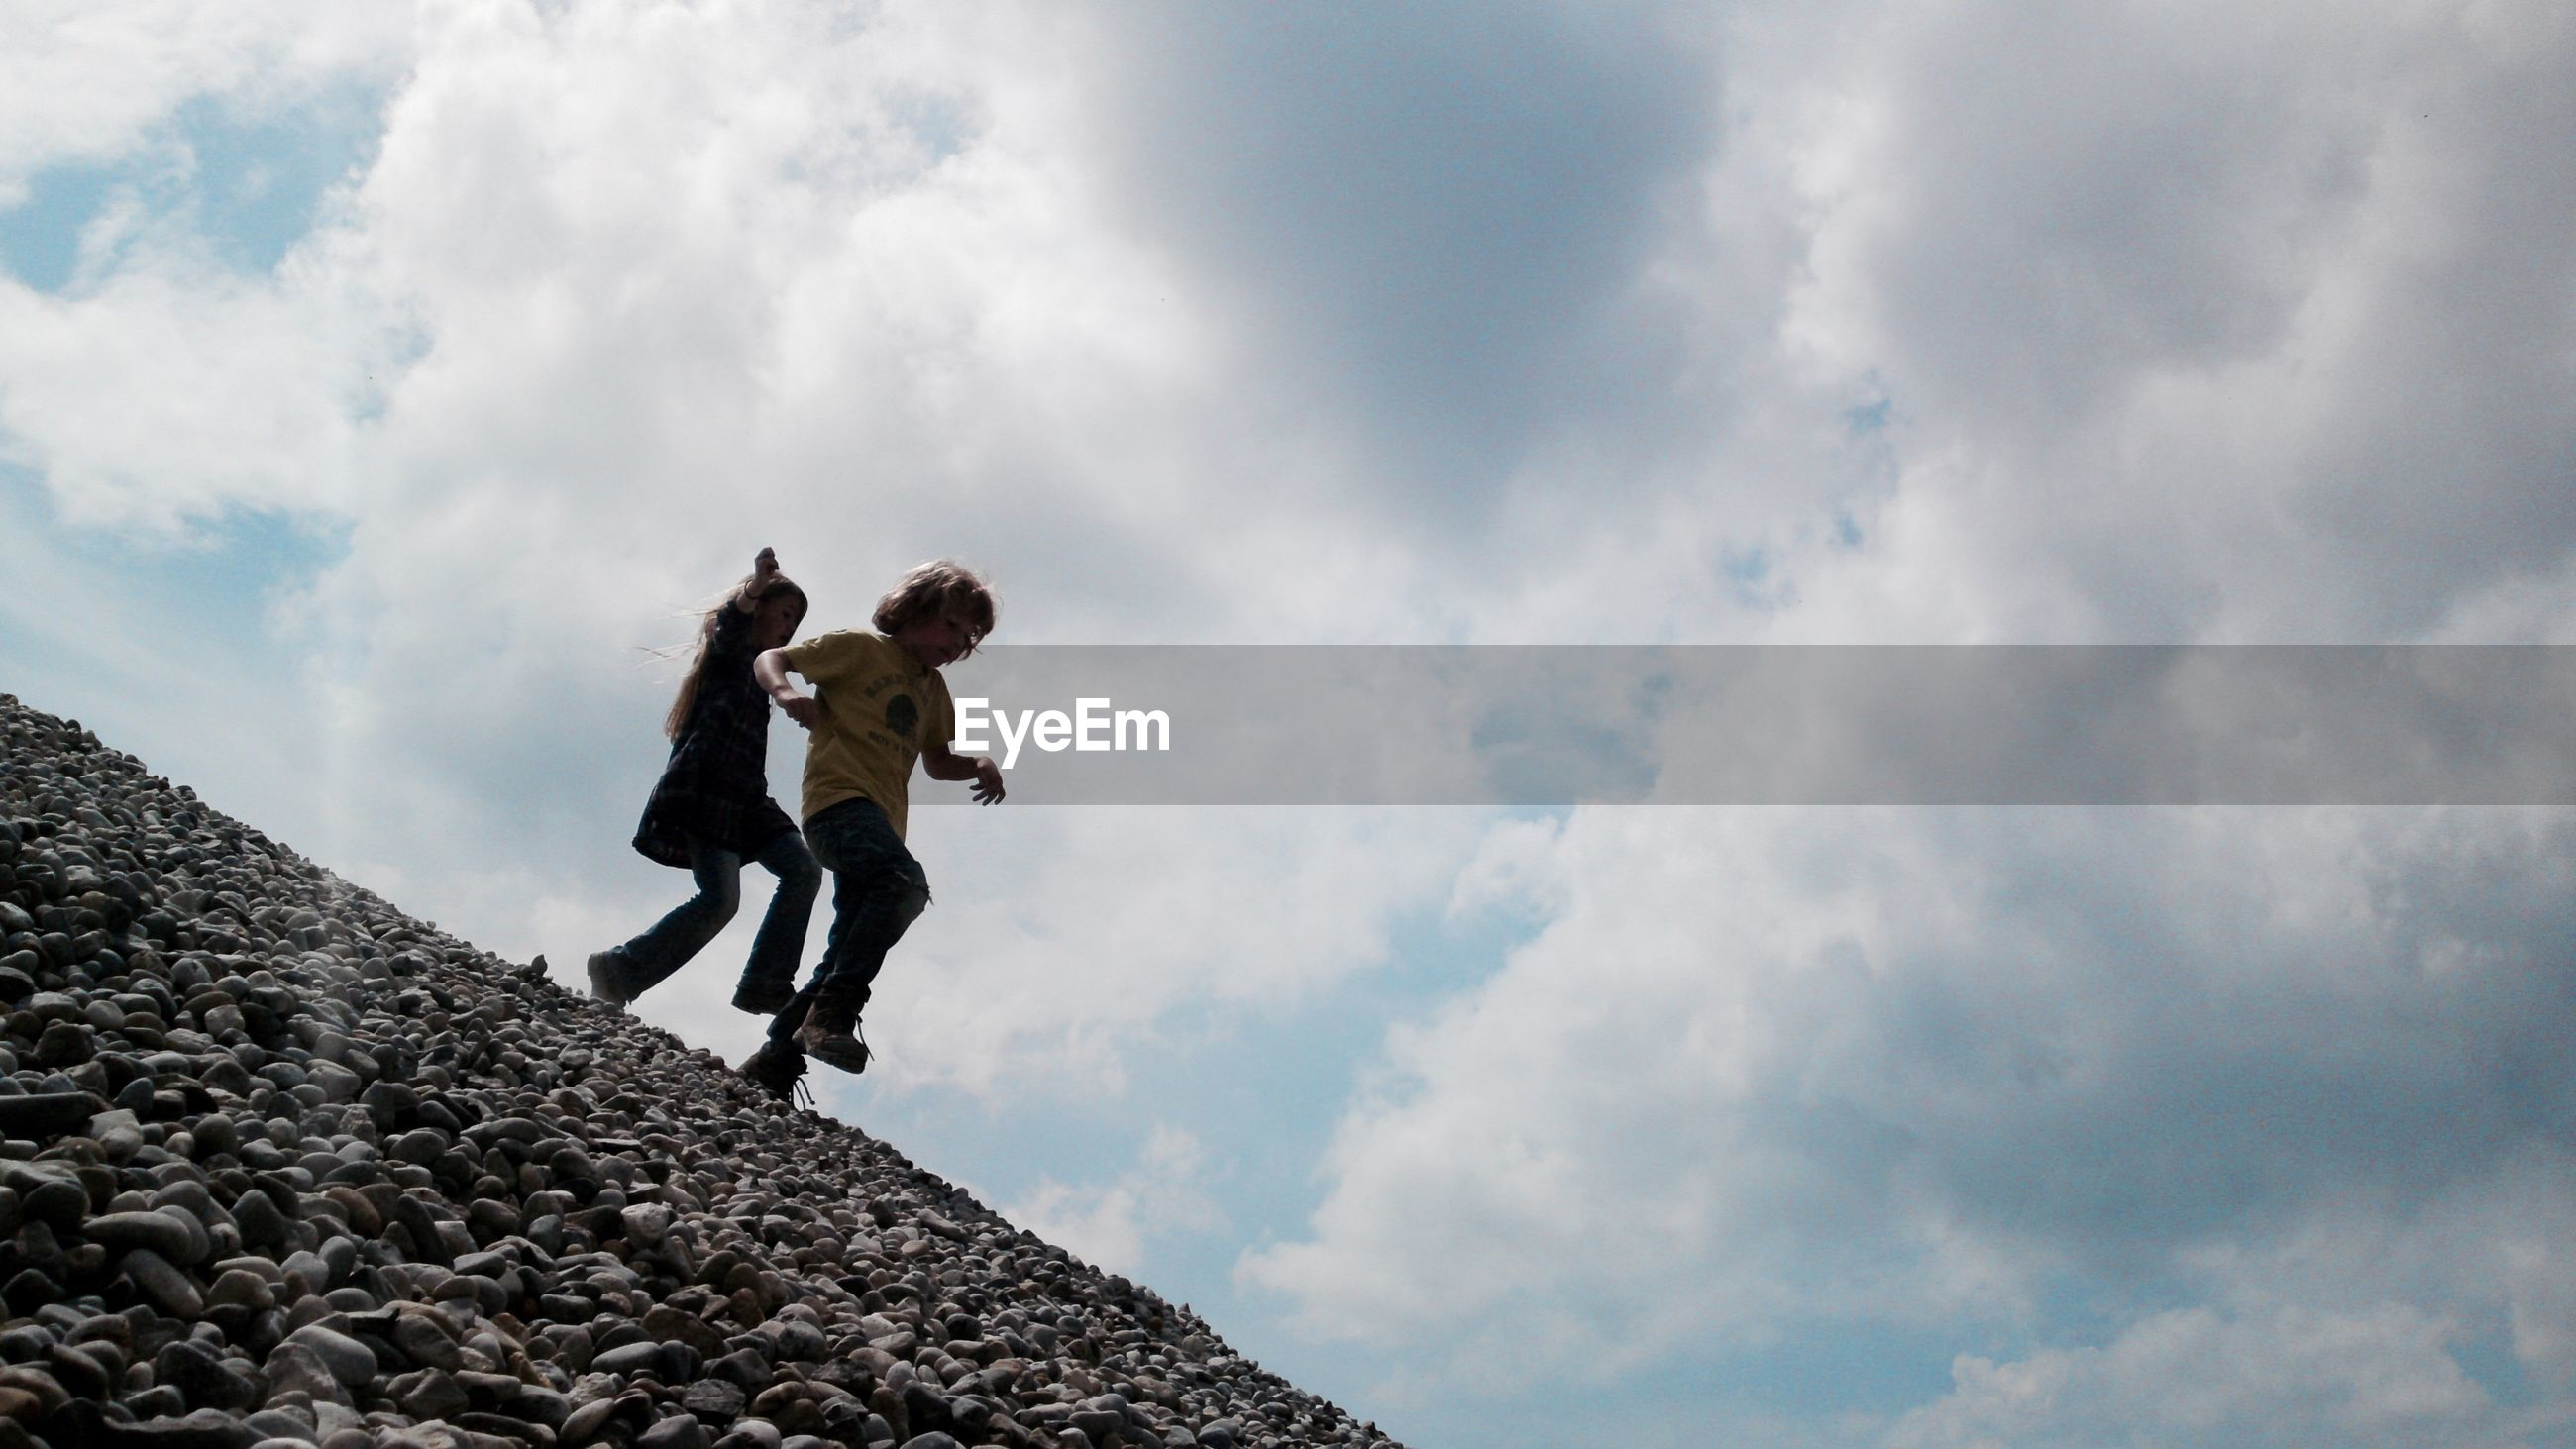 Siblings walking on heap of stones at construction site against cloudy sky